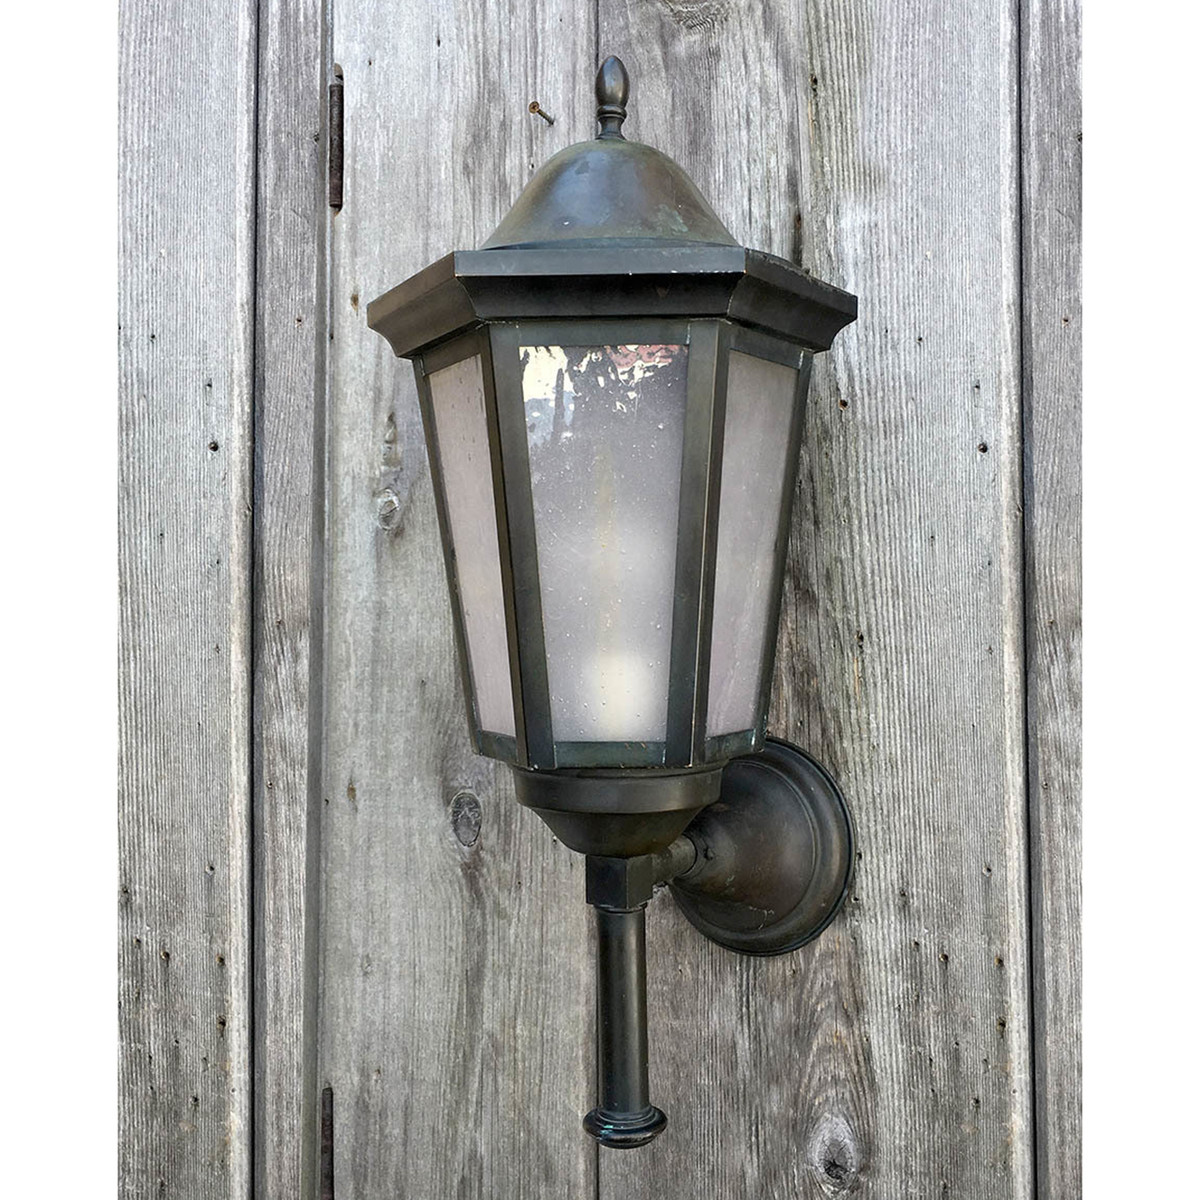 607220 - Antique Colonial Revival Exterior Wall Sconce